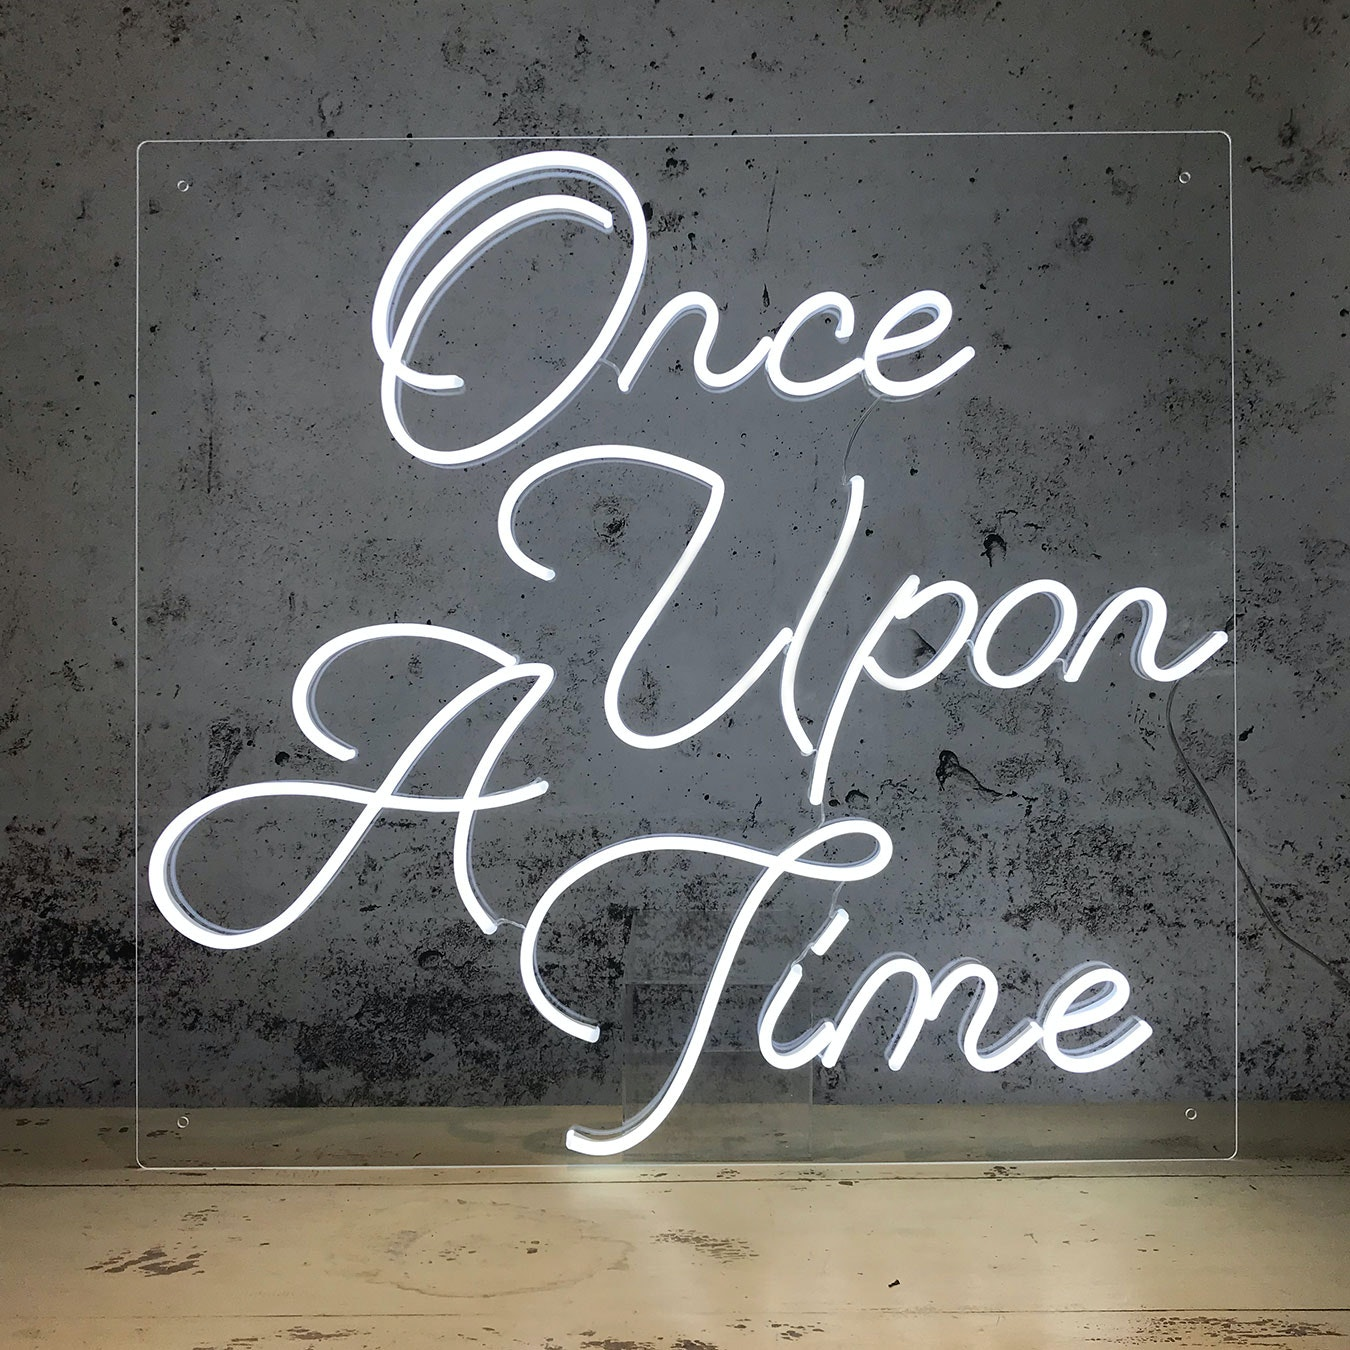 Led Neon Once Upon A Time By Love Inc Fy